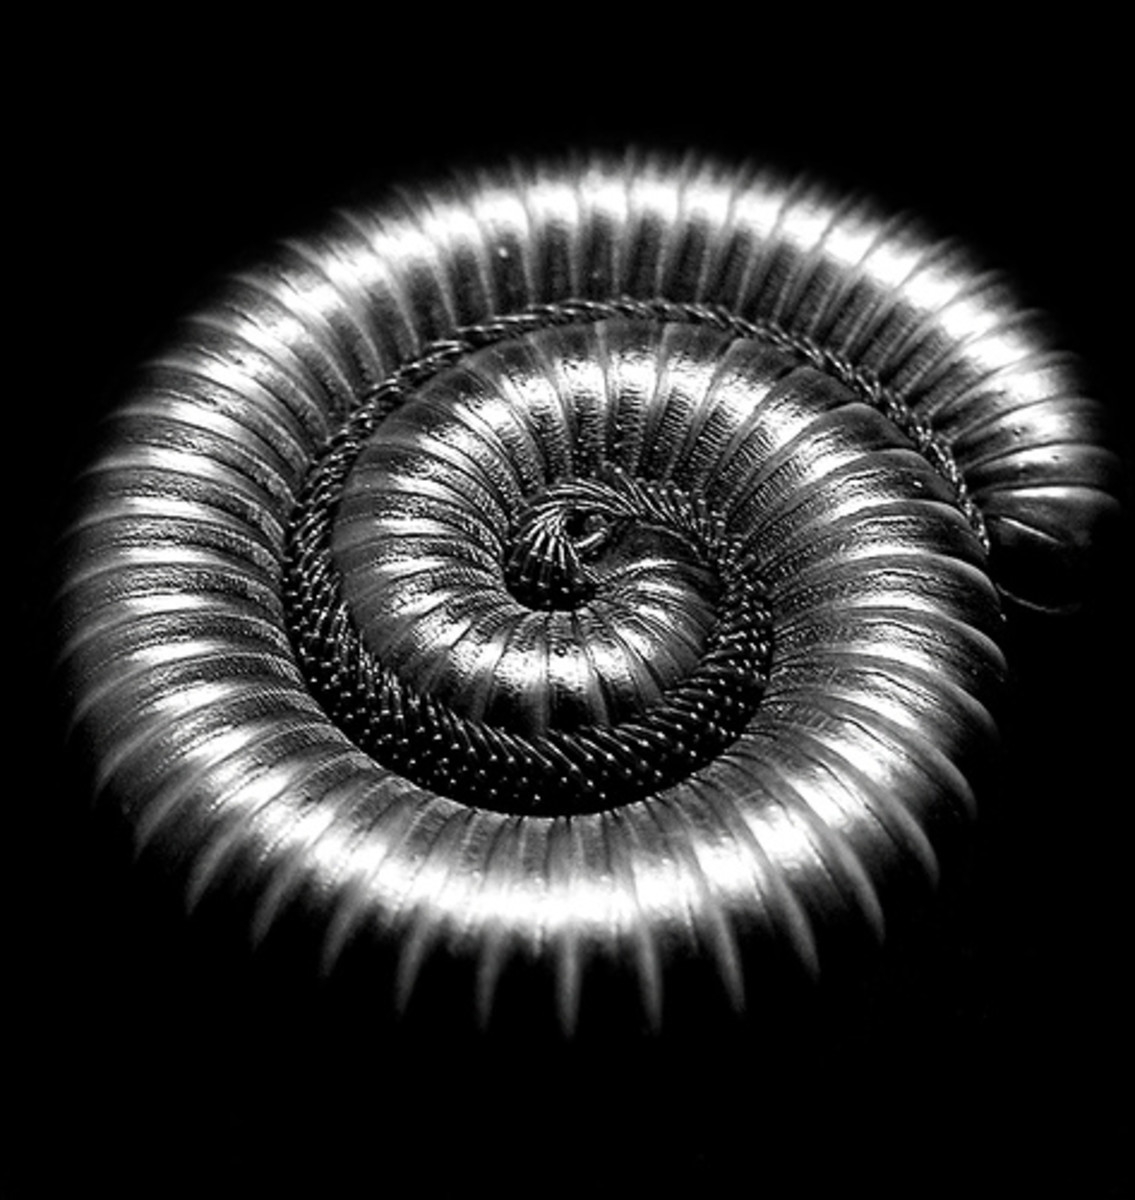 Spiral shape in nature